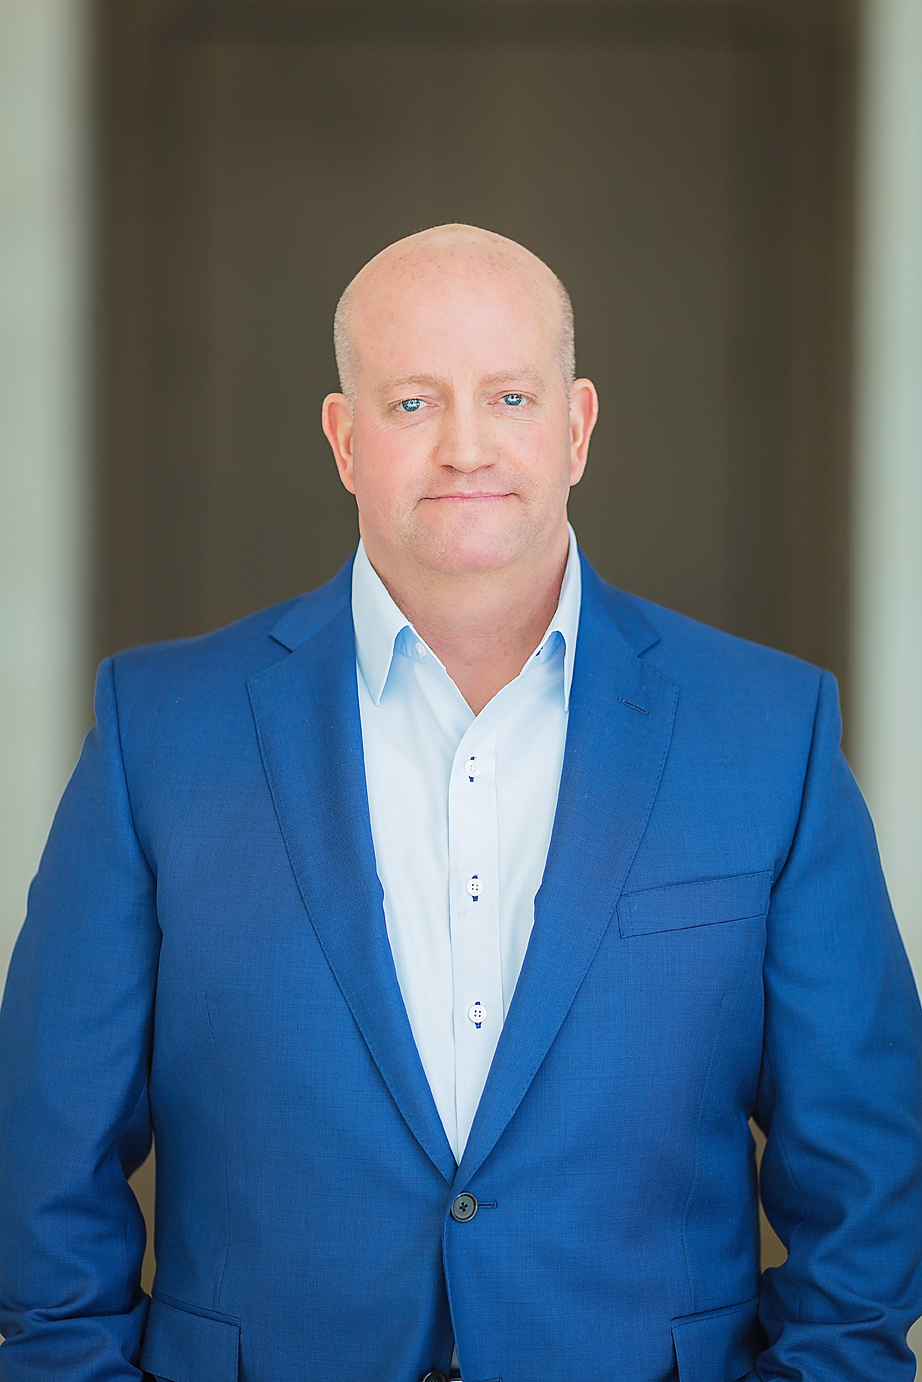 Chief Oil and Gas Dallas Head Shots Tim Mullen ChiefOG.png